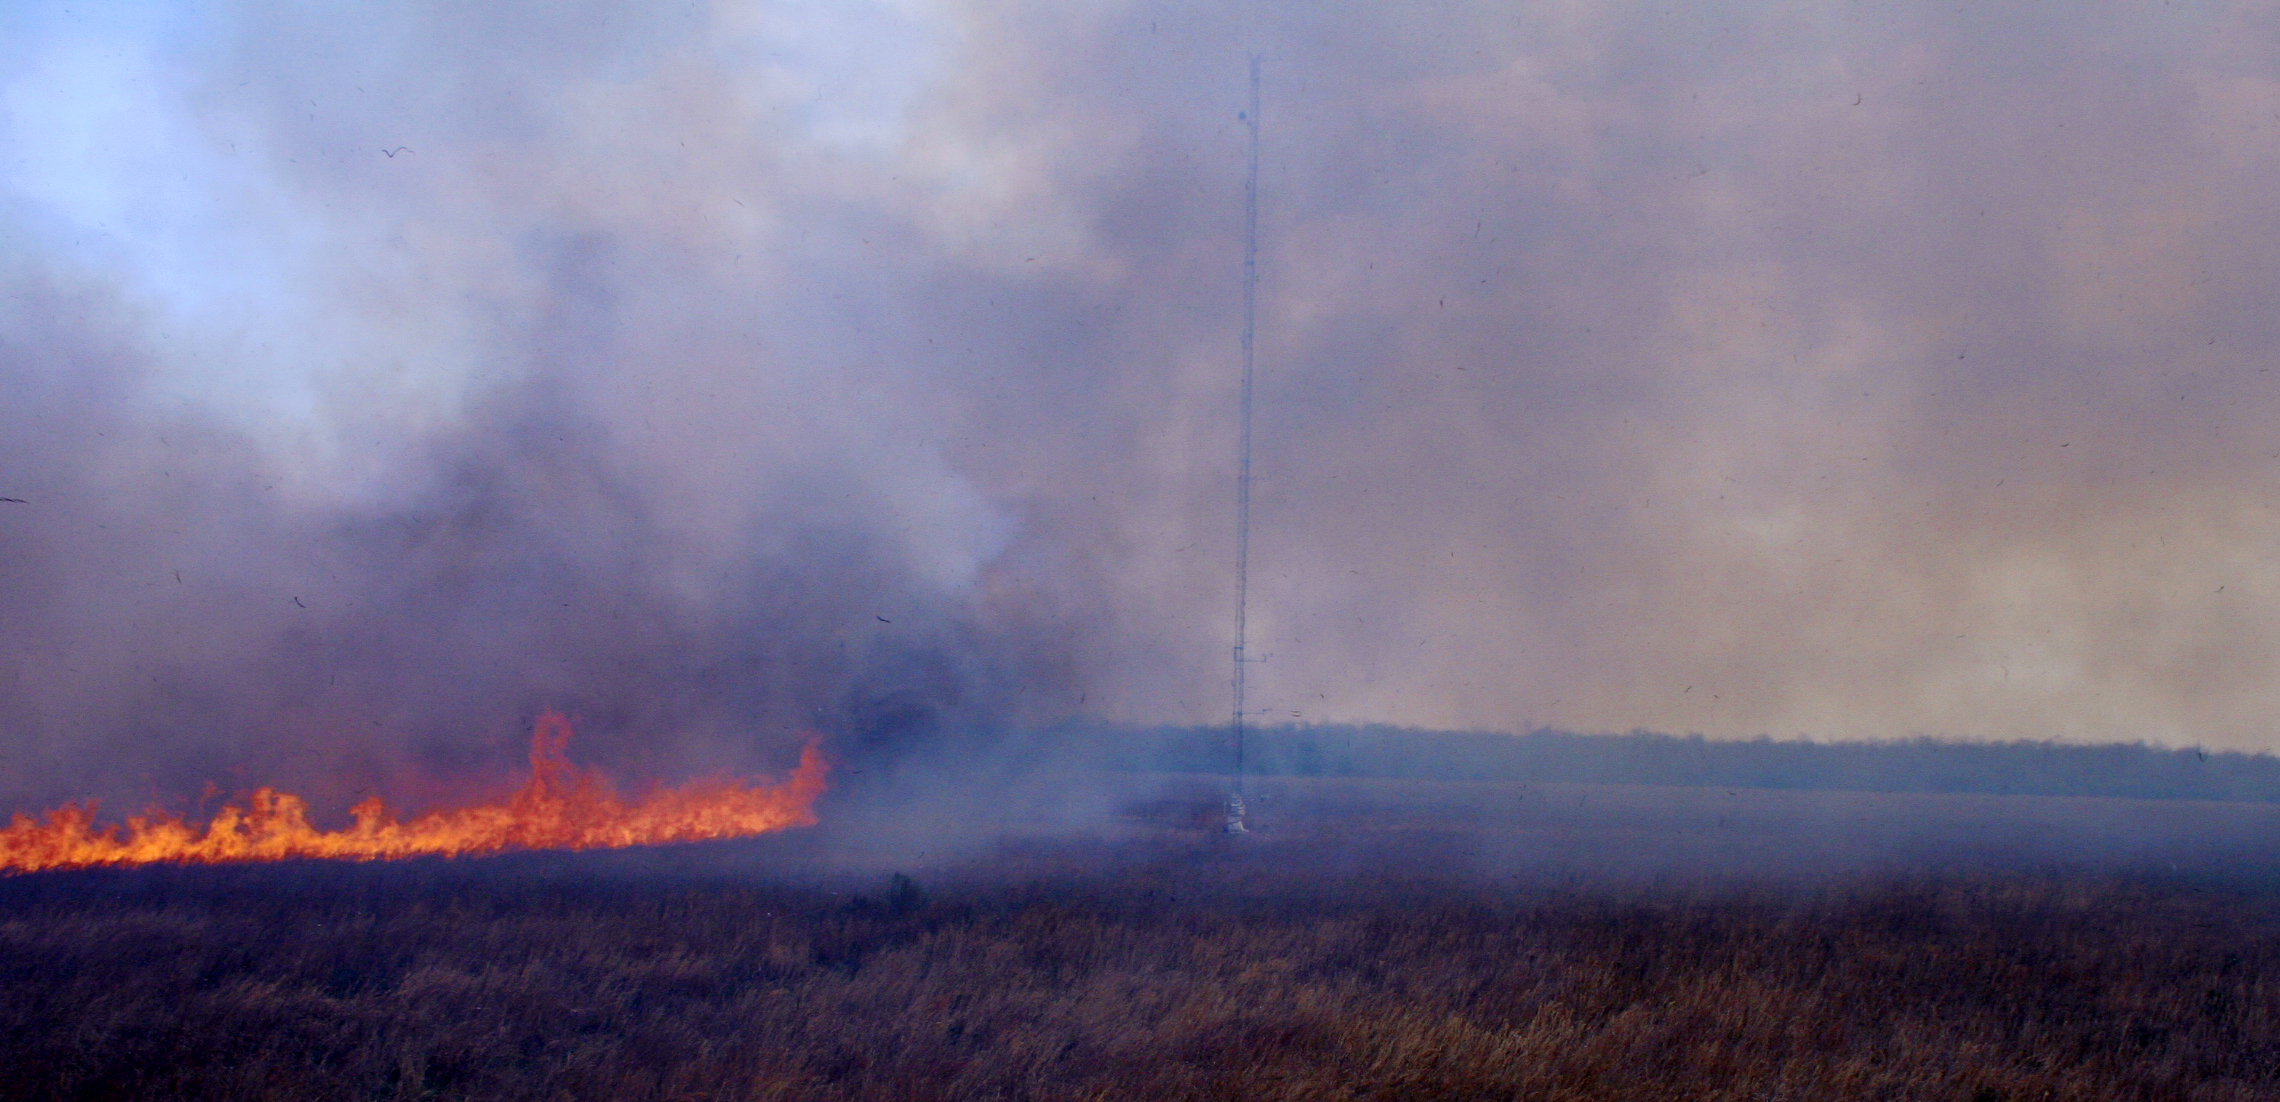 Fire front front moving towards the 43 m tall meteorological instrument tower during FireFlux, 23 Feburary 2006.